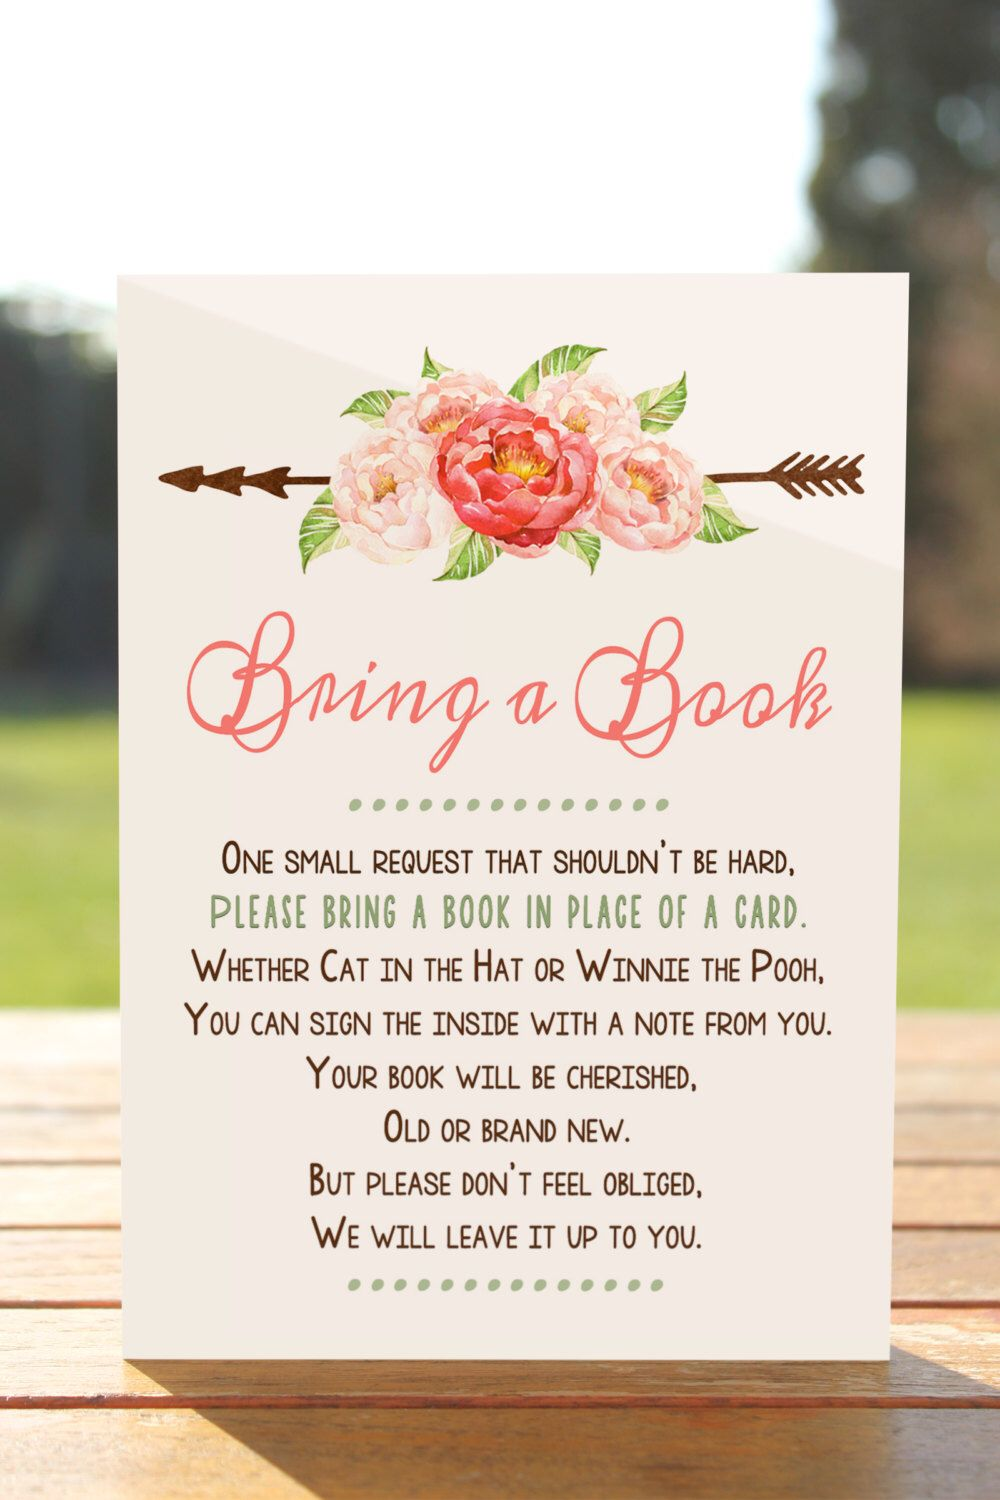 Marvelous Bring A Book Instead Of A Card, Bring A Book Baby Shower Insert, Bring